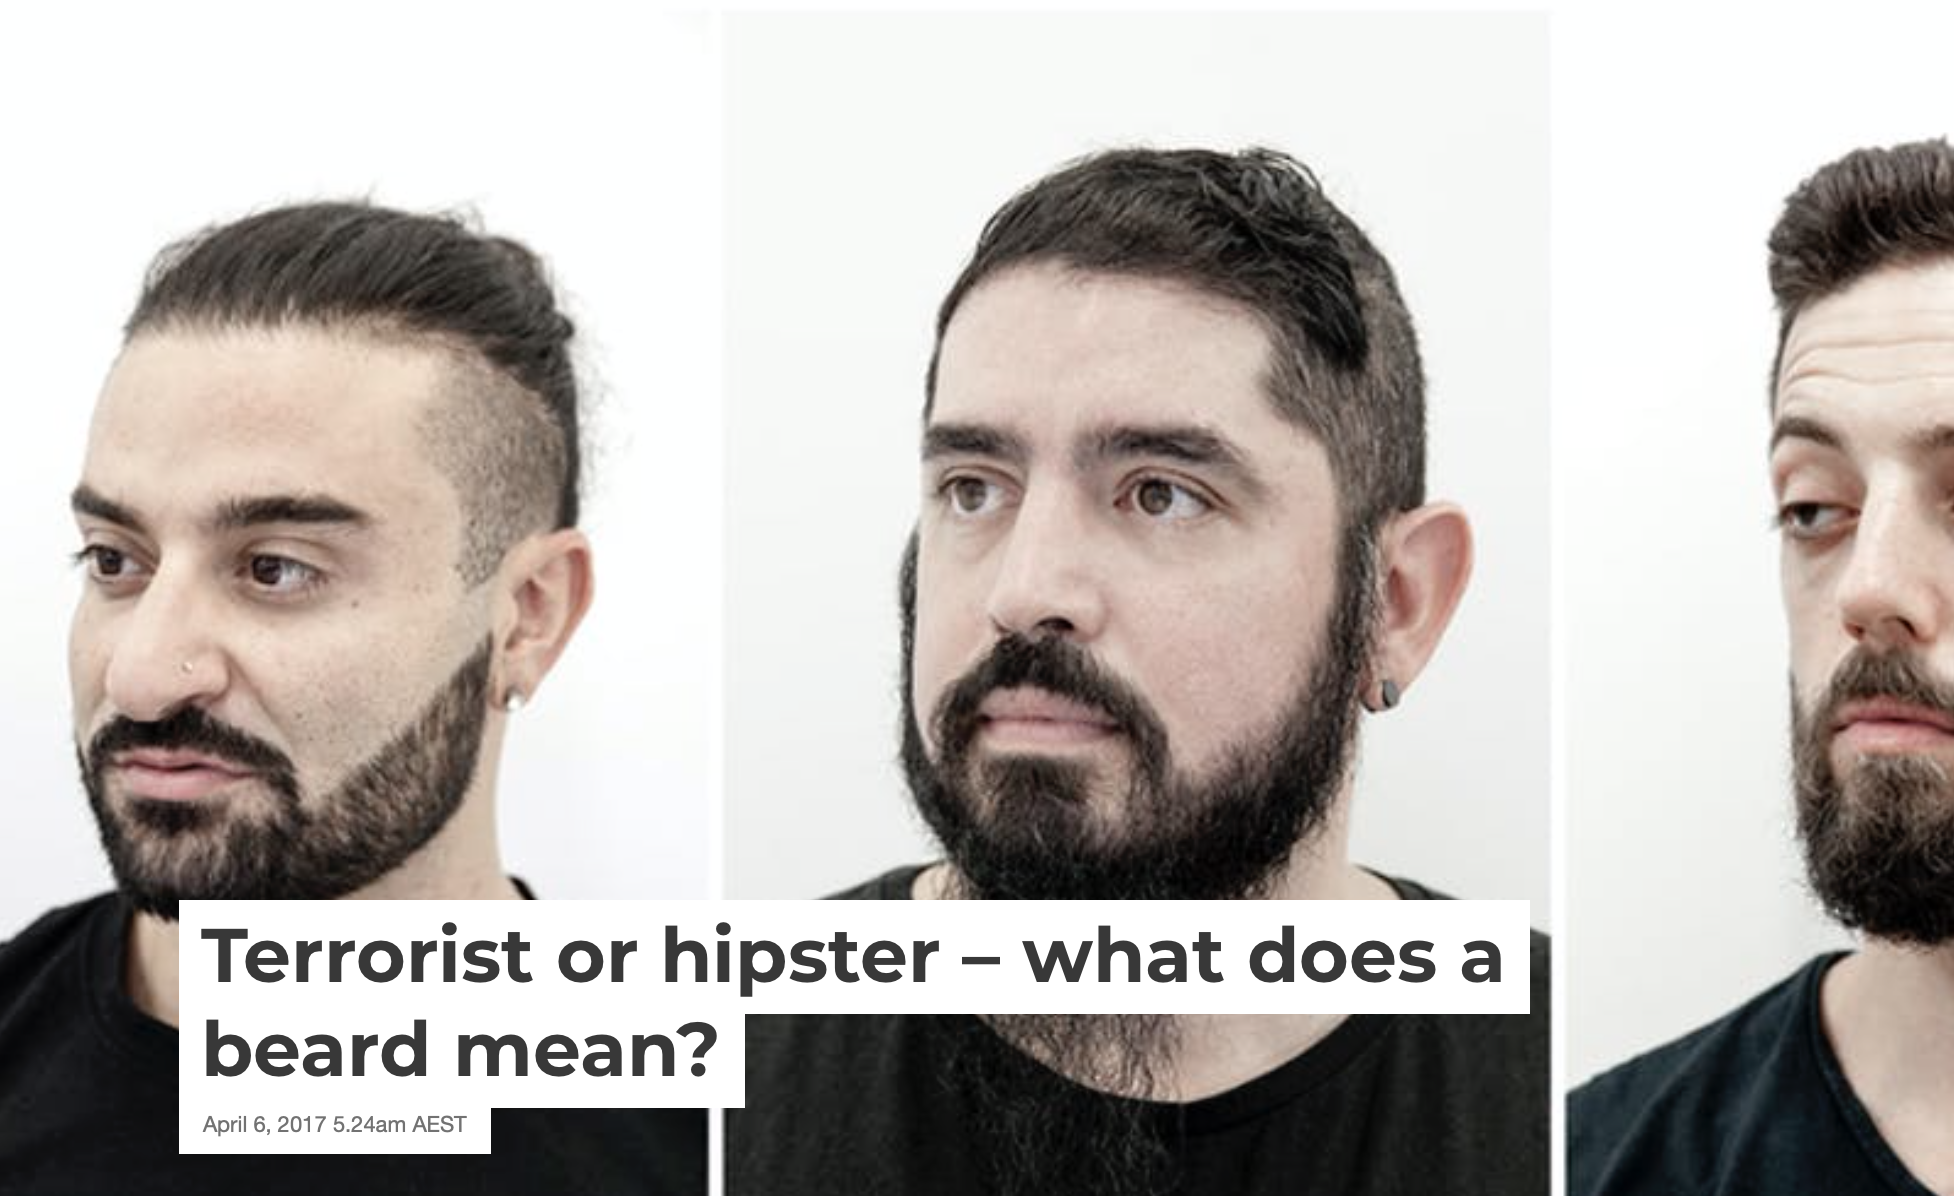 Terrorist or hipster, what does a beard mean